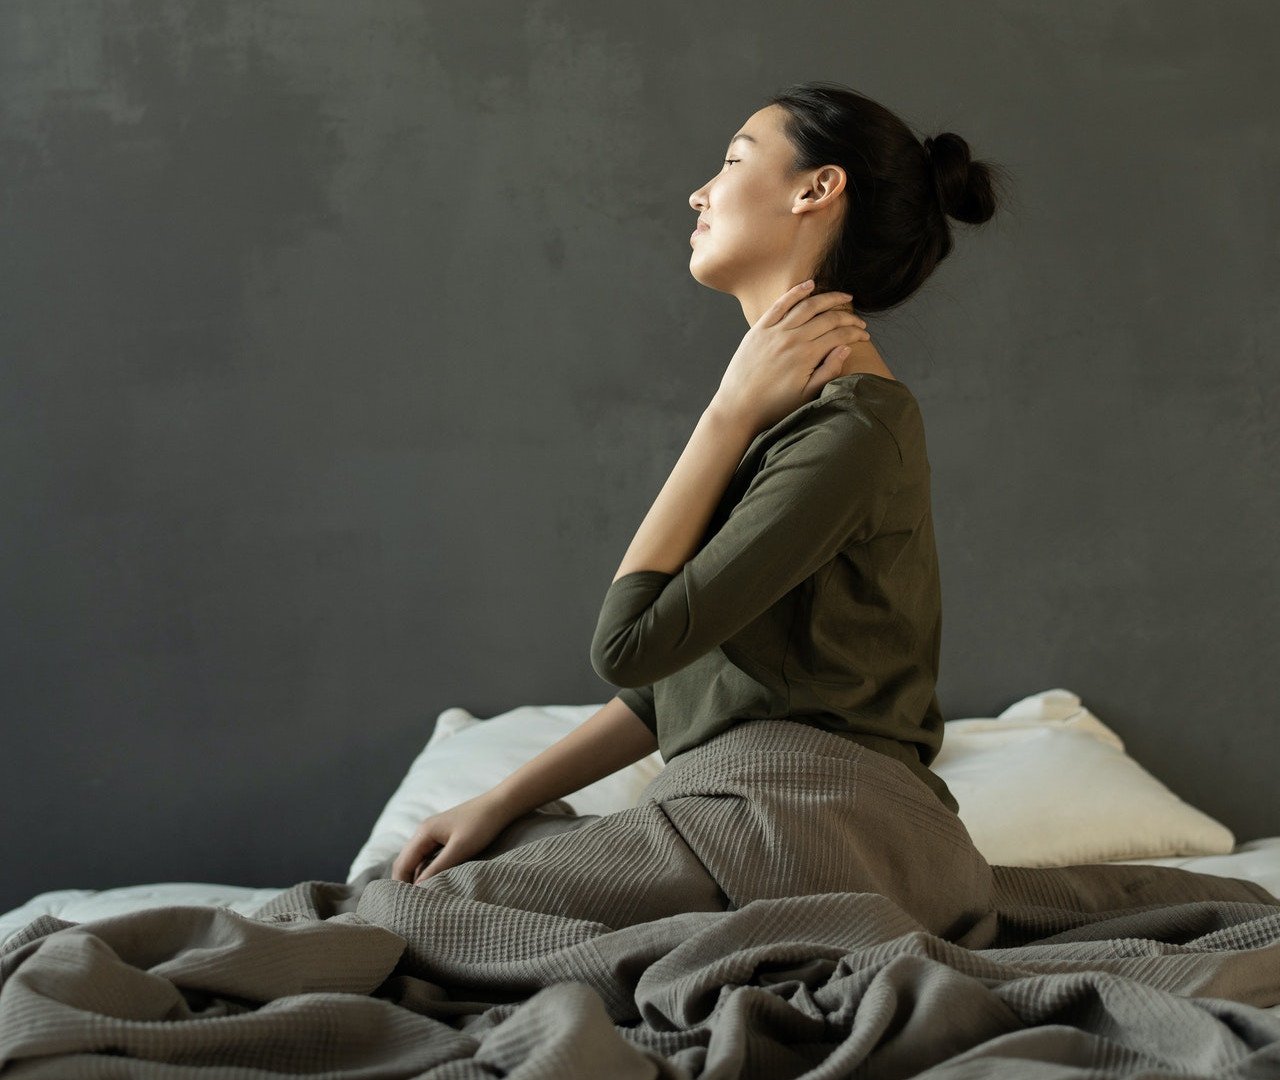 mattress is causing neck and back pain